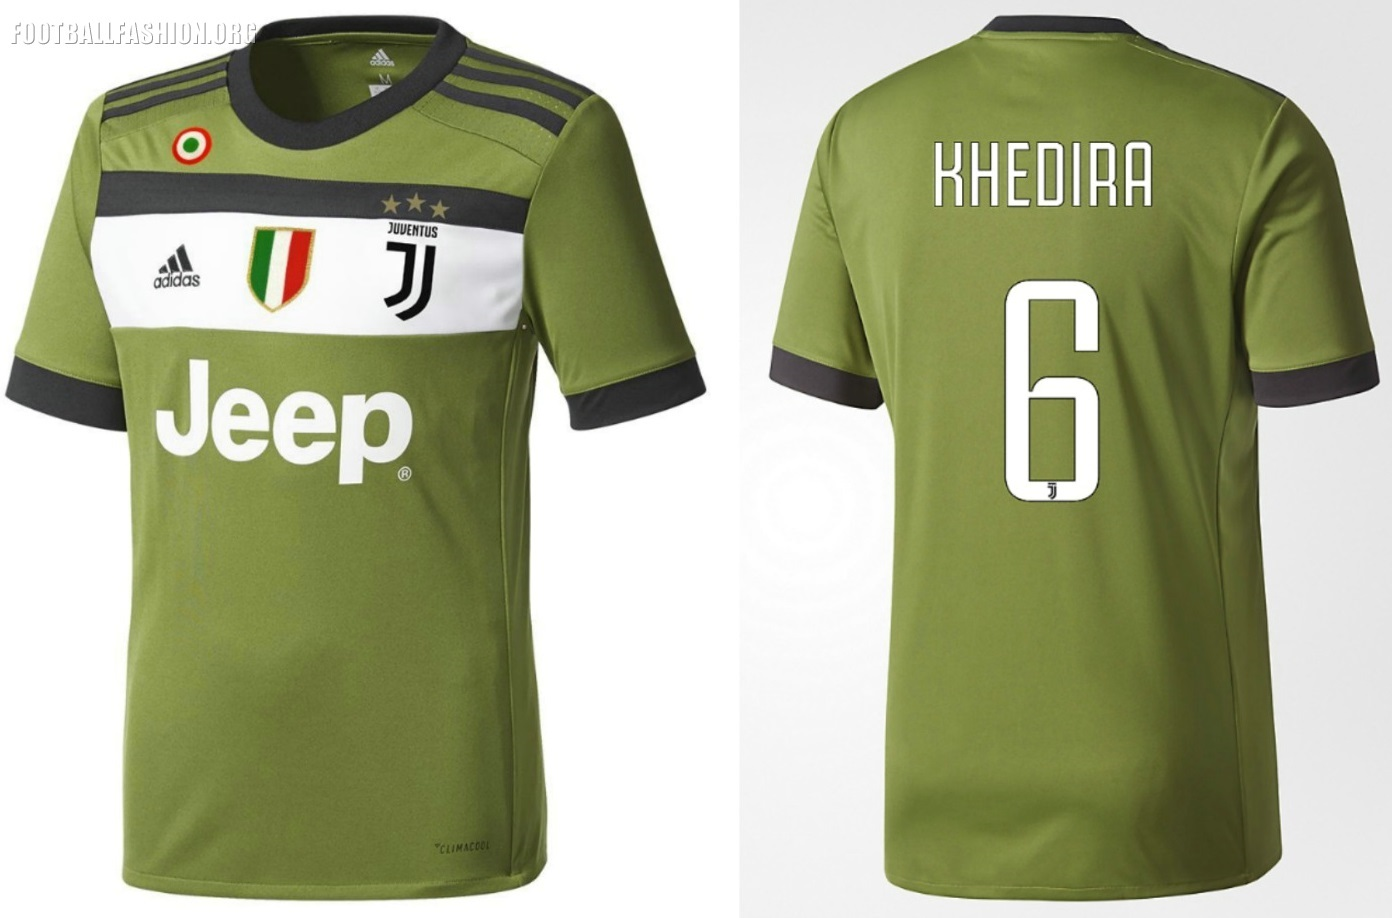 d4b0dfc6e98 Juventus FC 2017 18 adidas Third Kit - FOOTBALL FASHION.ORG